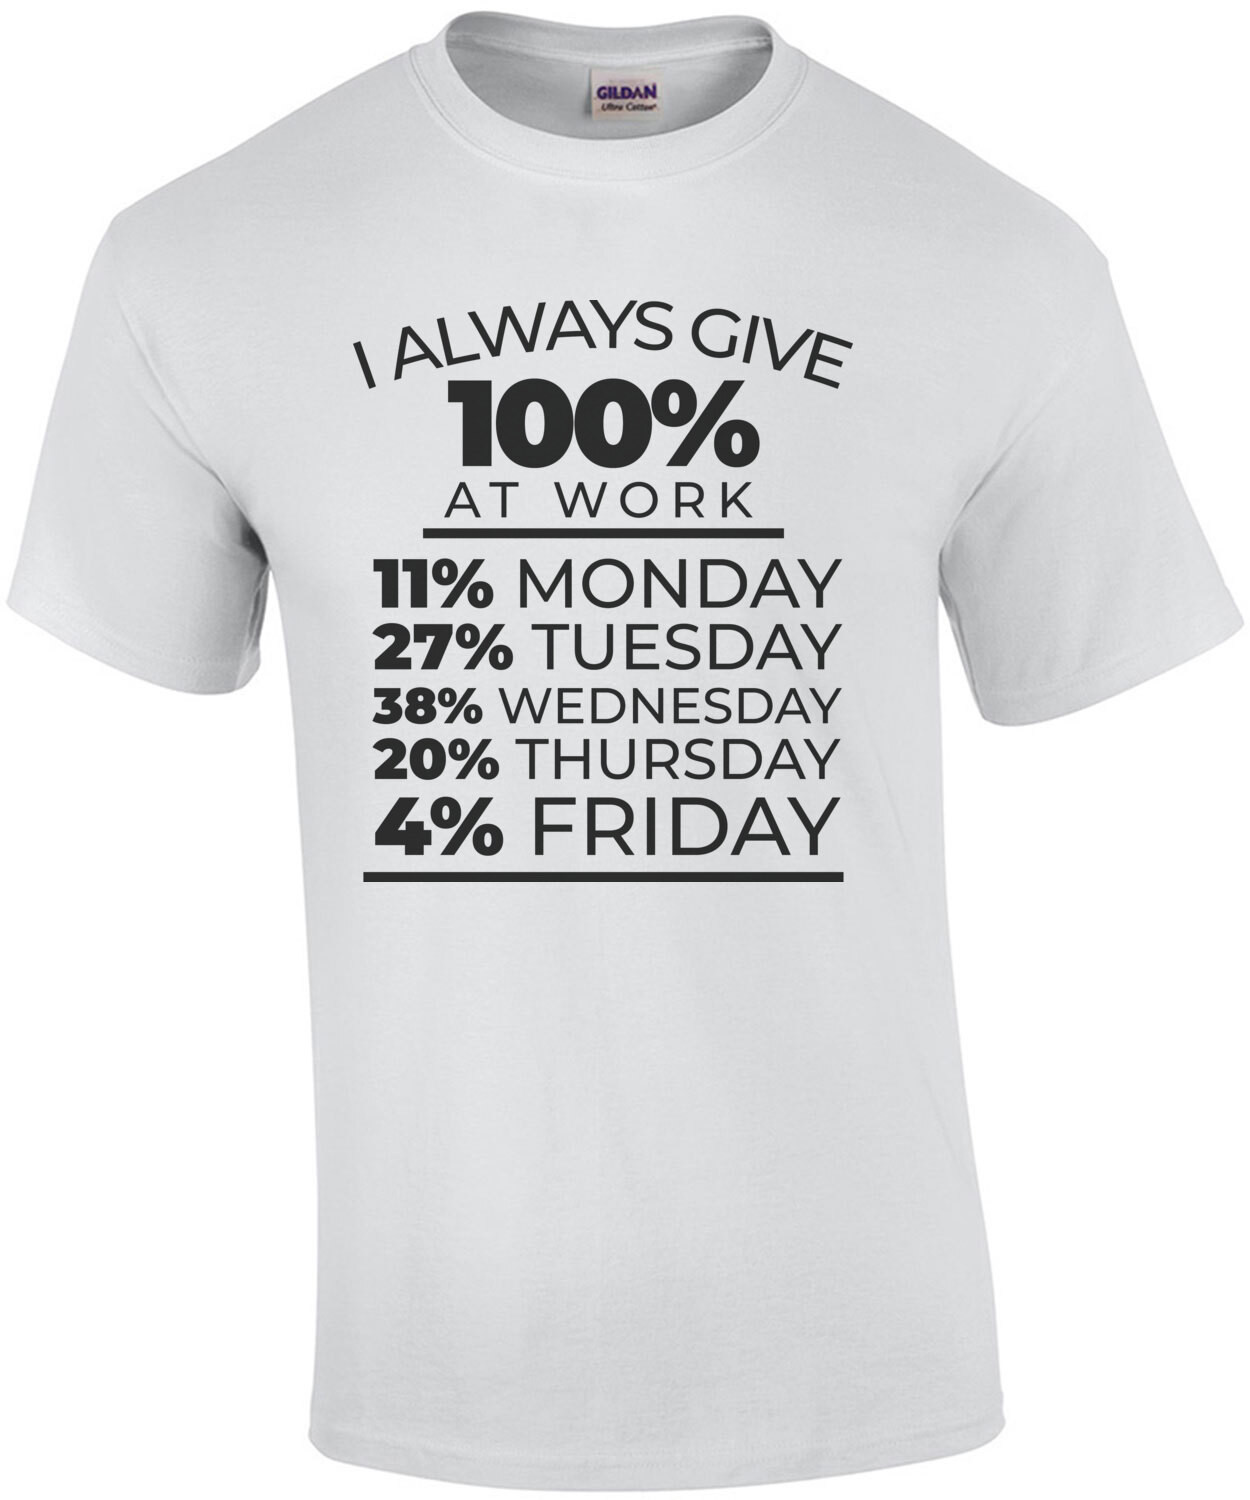 I always give 100% at work - 11% monday 27% tuesday - funny work office humor t-shirt